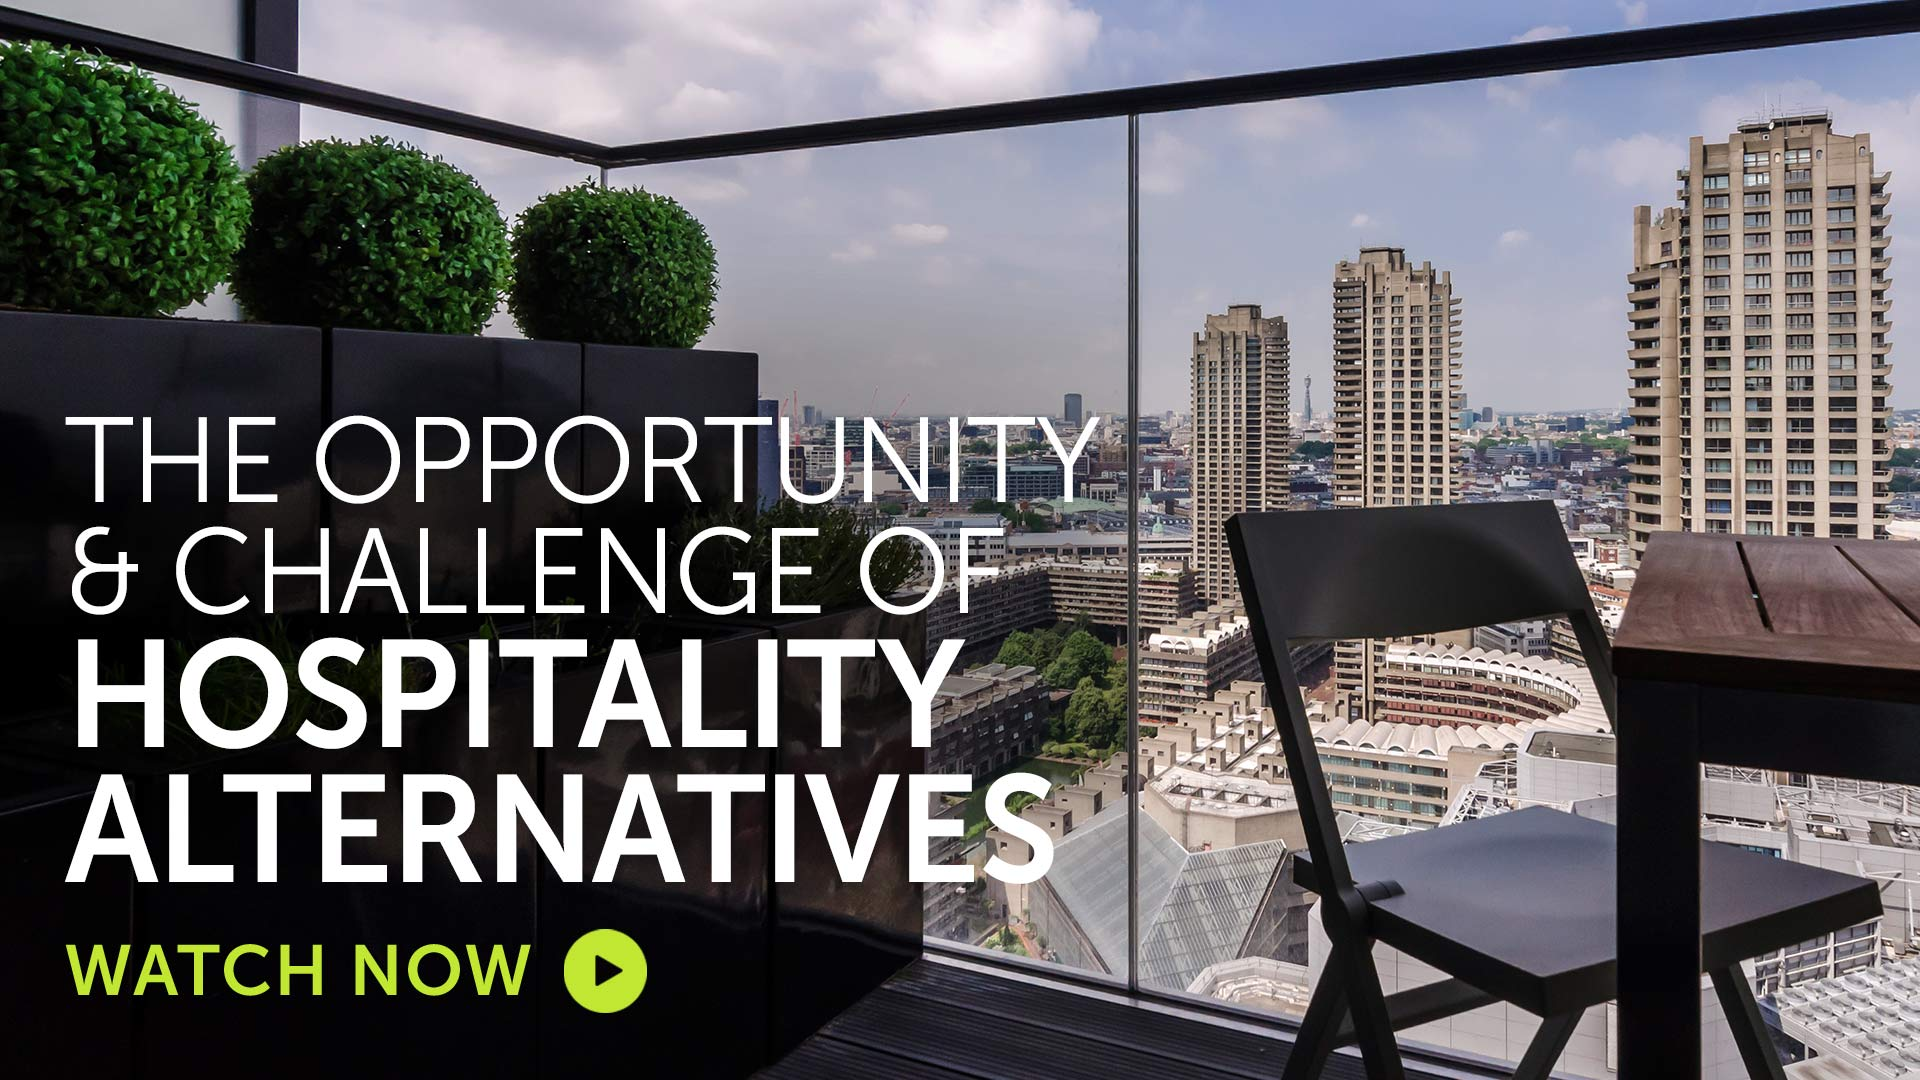 Briefing: The opportunity and challenge of hospitality alternatives